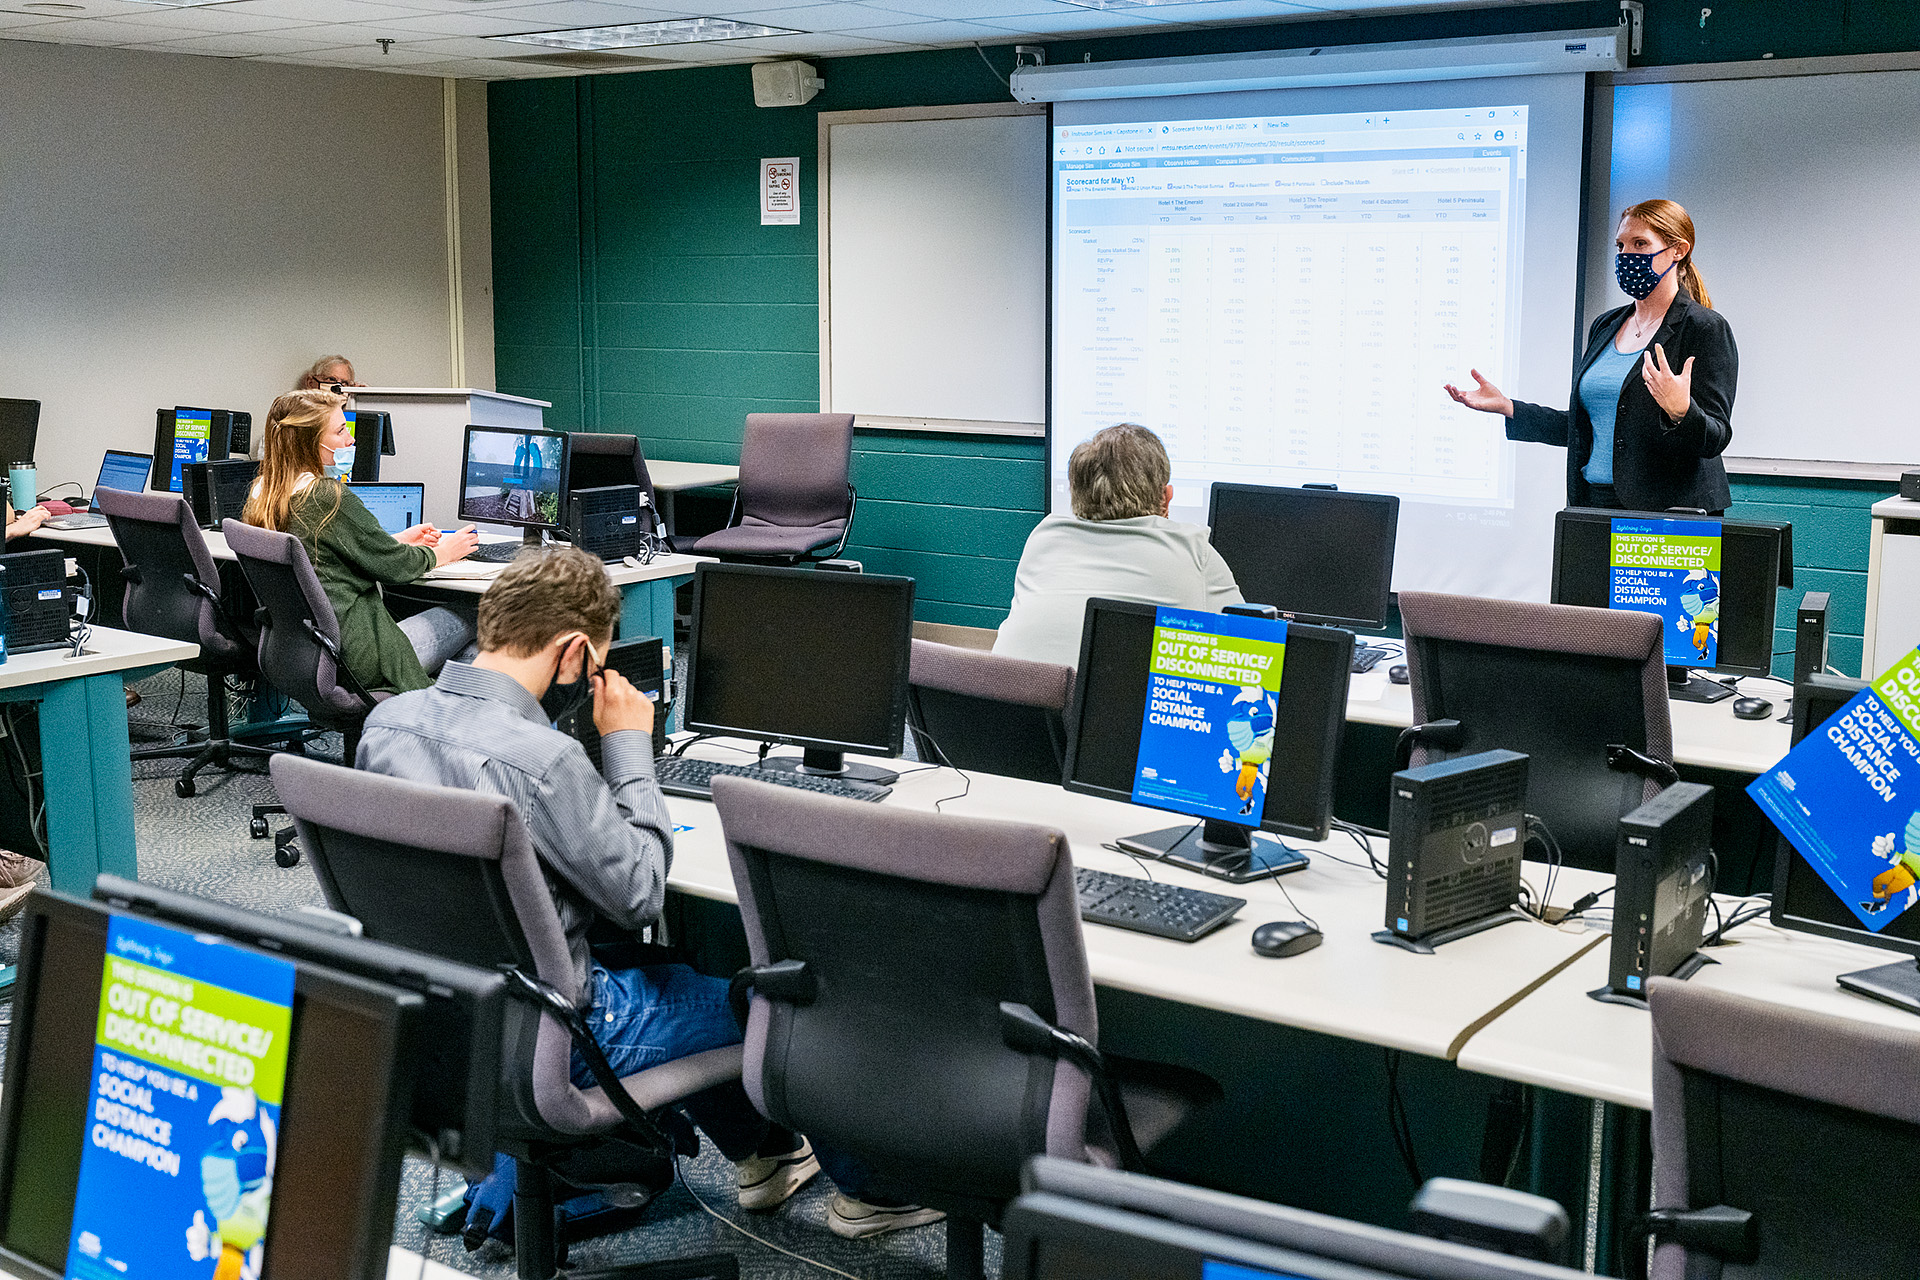 Dr. Elizabeth Whalen is teaching on-campus and online classes this semester. (Photo: Andy Heidt)